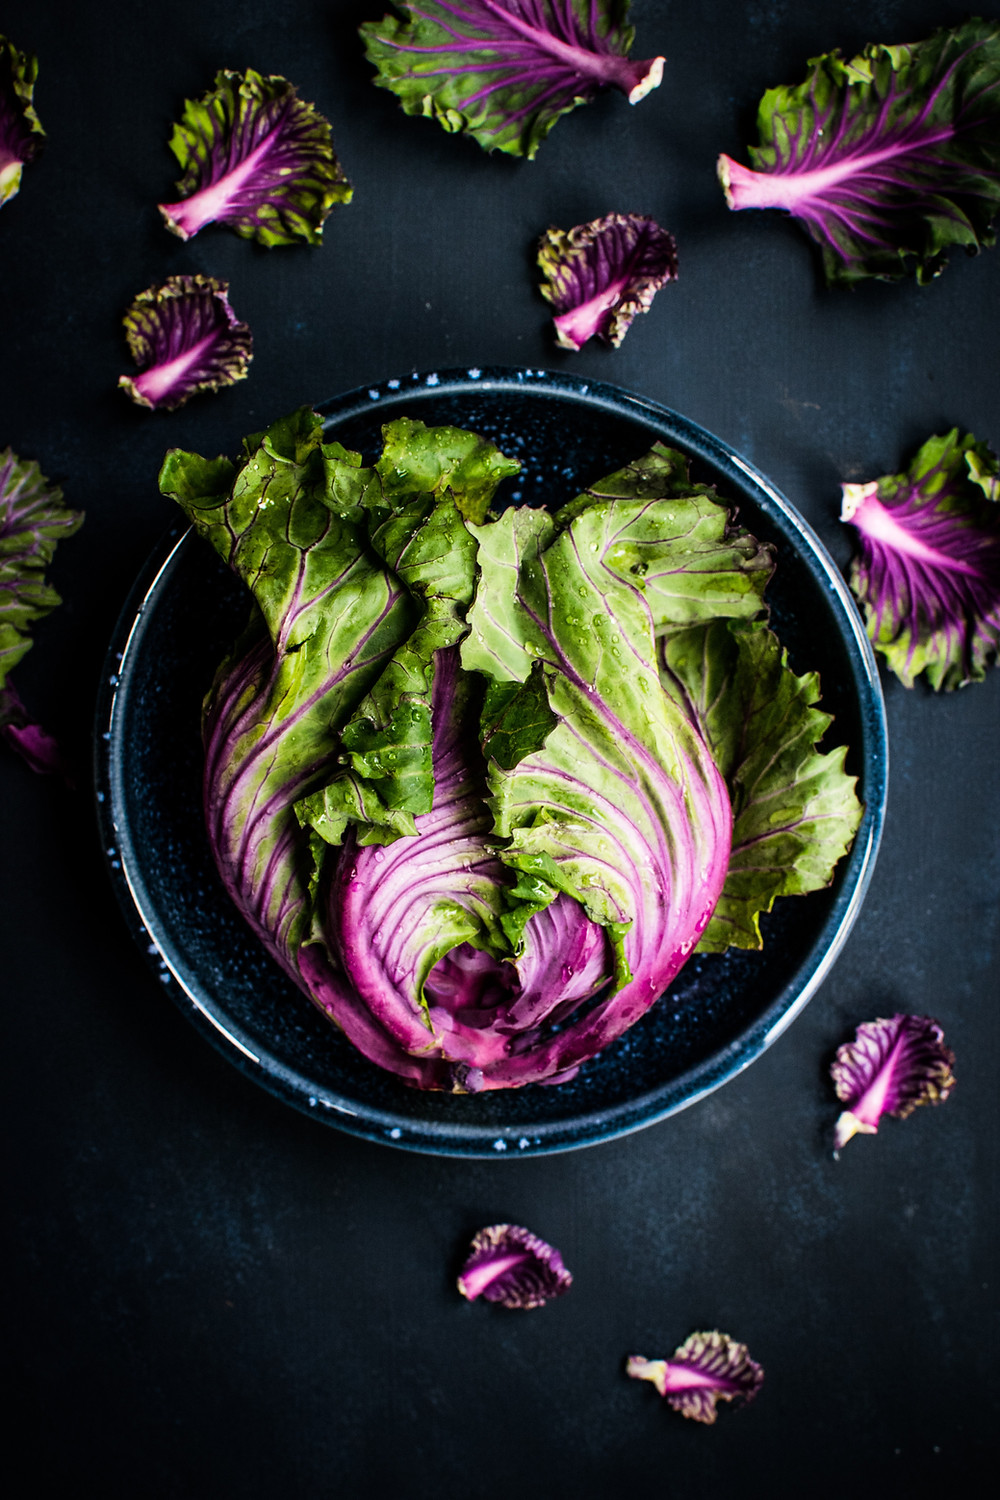 Green leafy lettuce with purple veins